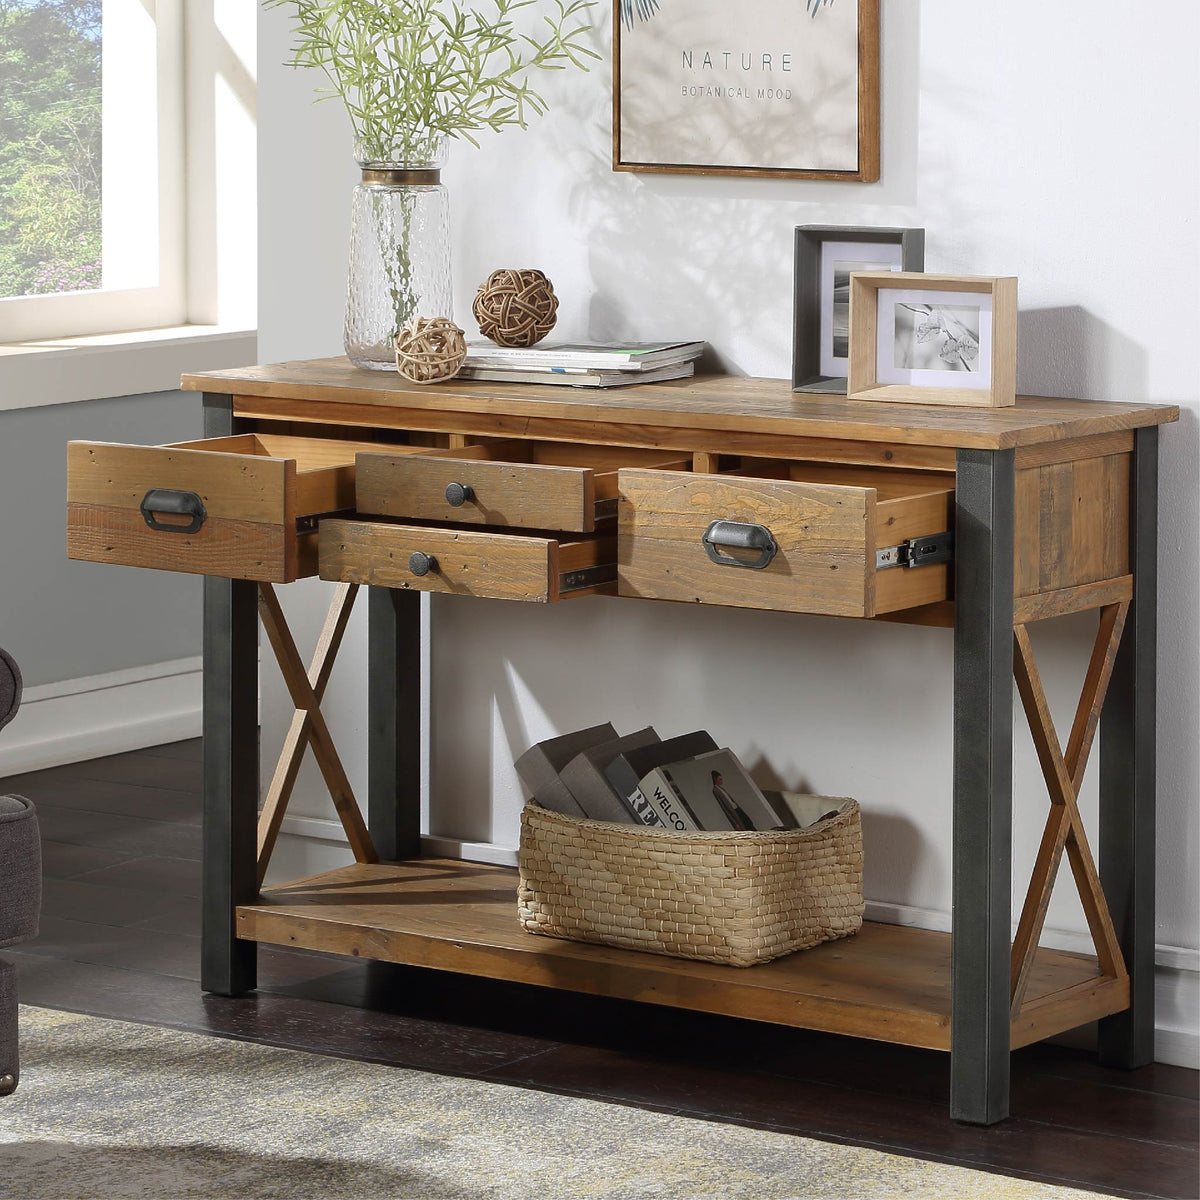 Open drawer view of Urban Elegance Reclaimed Wood Large Console Table